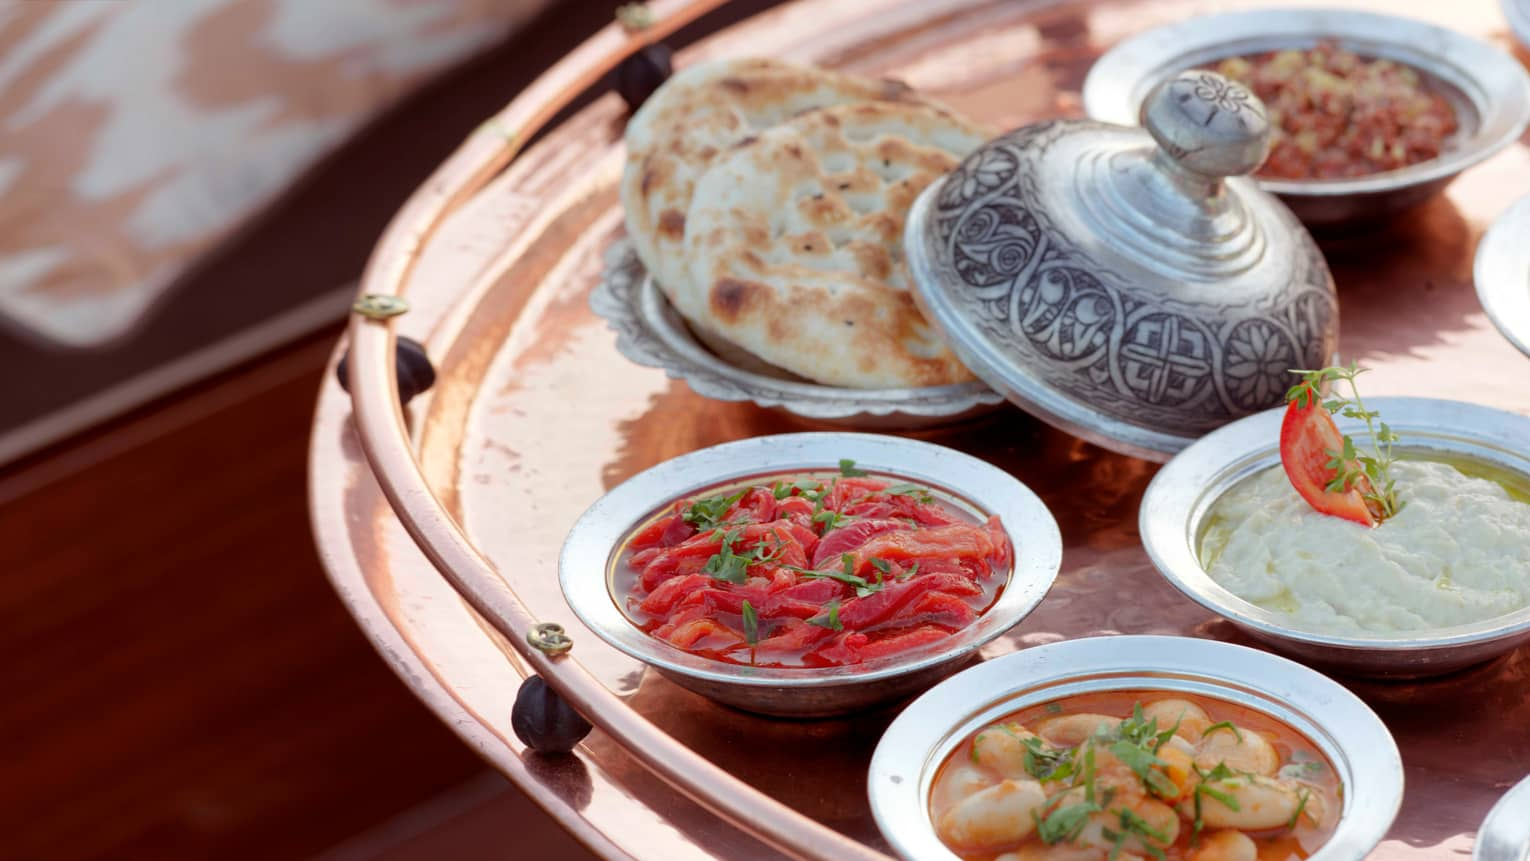 Small Mezze dishes on brass platter